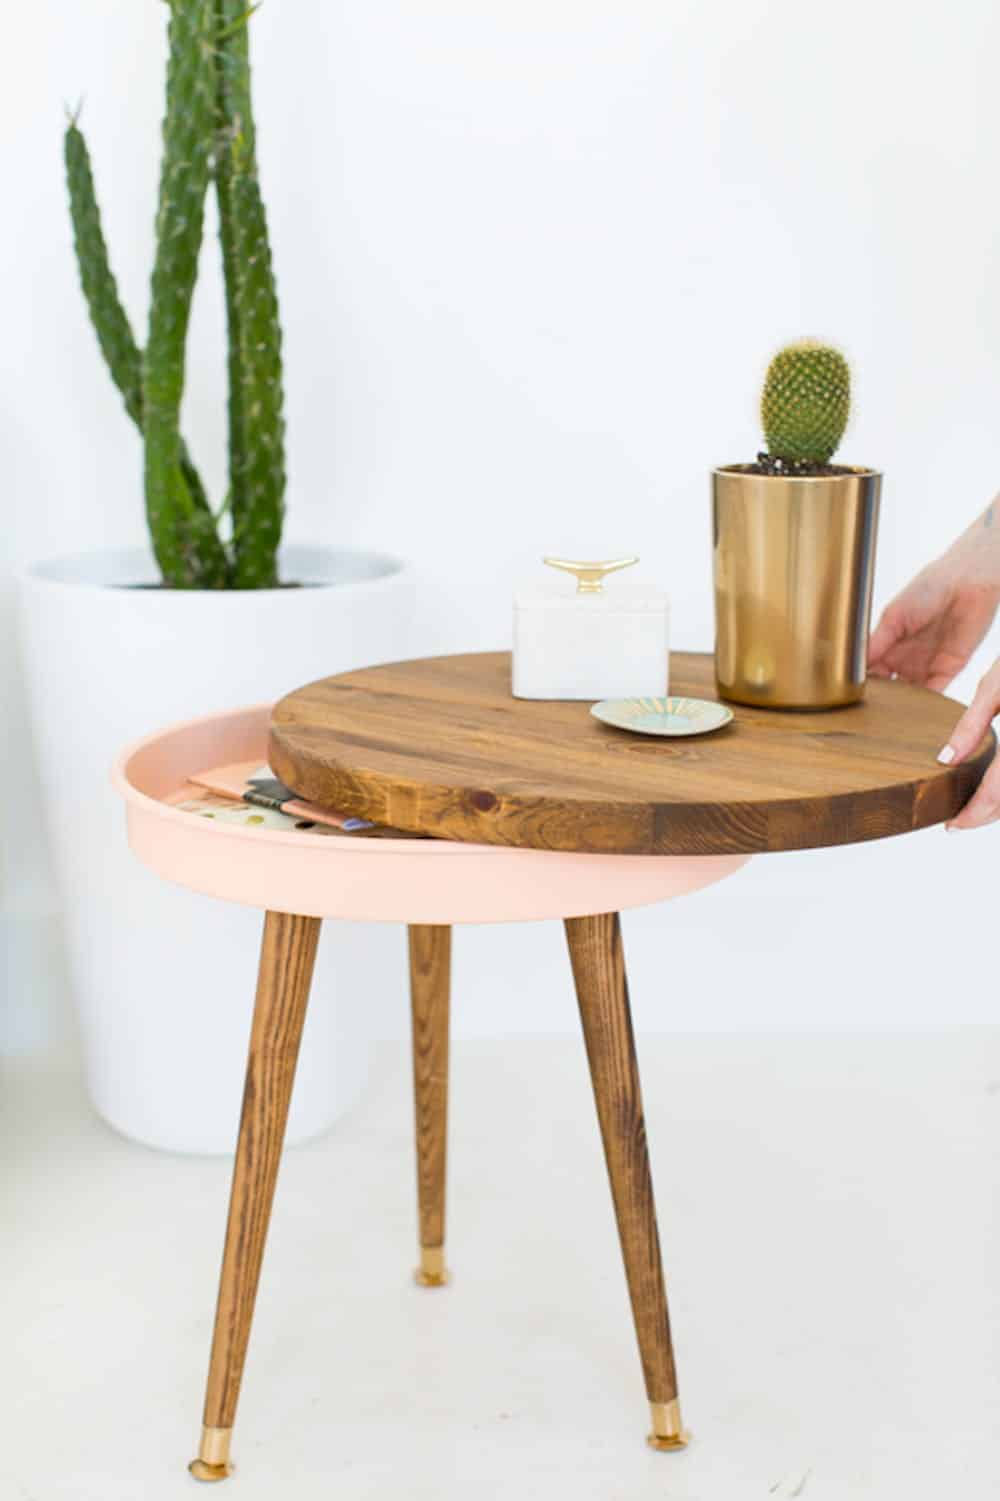 Diy midcentury modern table with storage